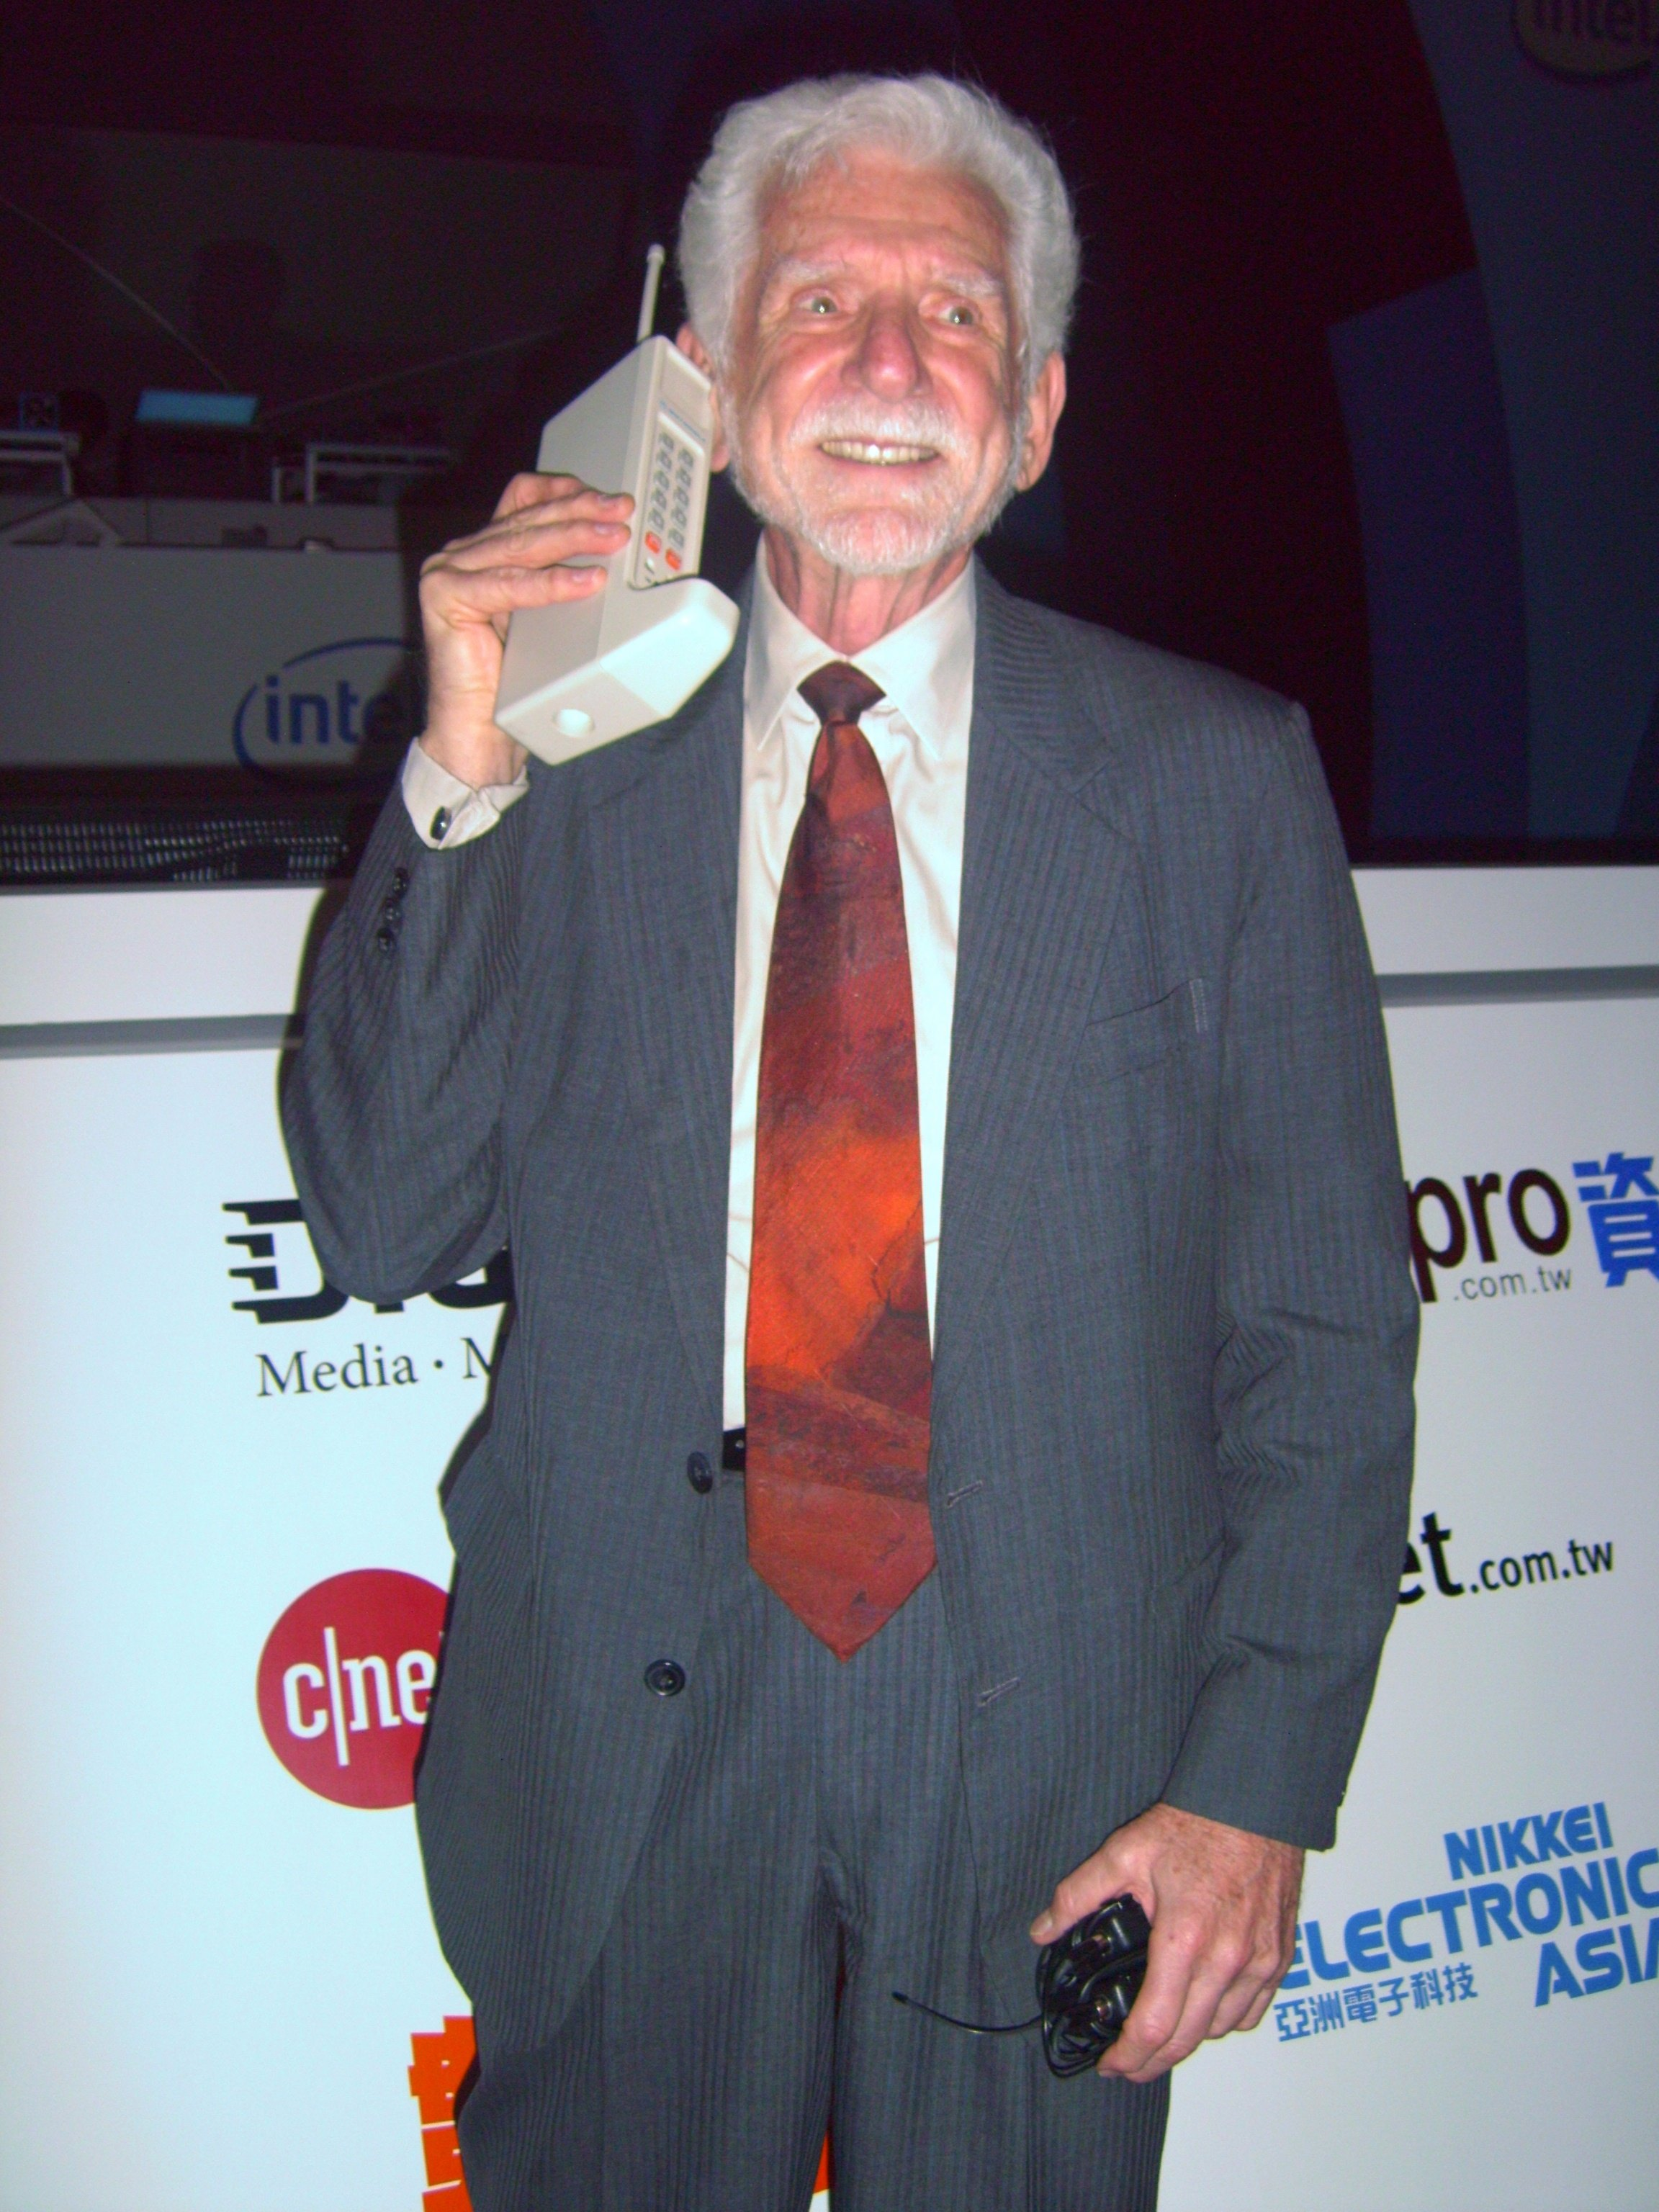 Motorola's Martin Cooper reenacting the world's first hand-held mobile phone call with the Motorola DynaTAC